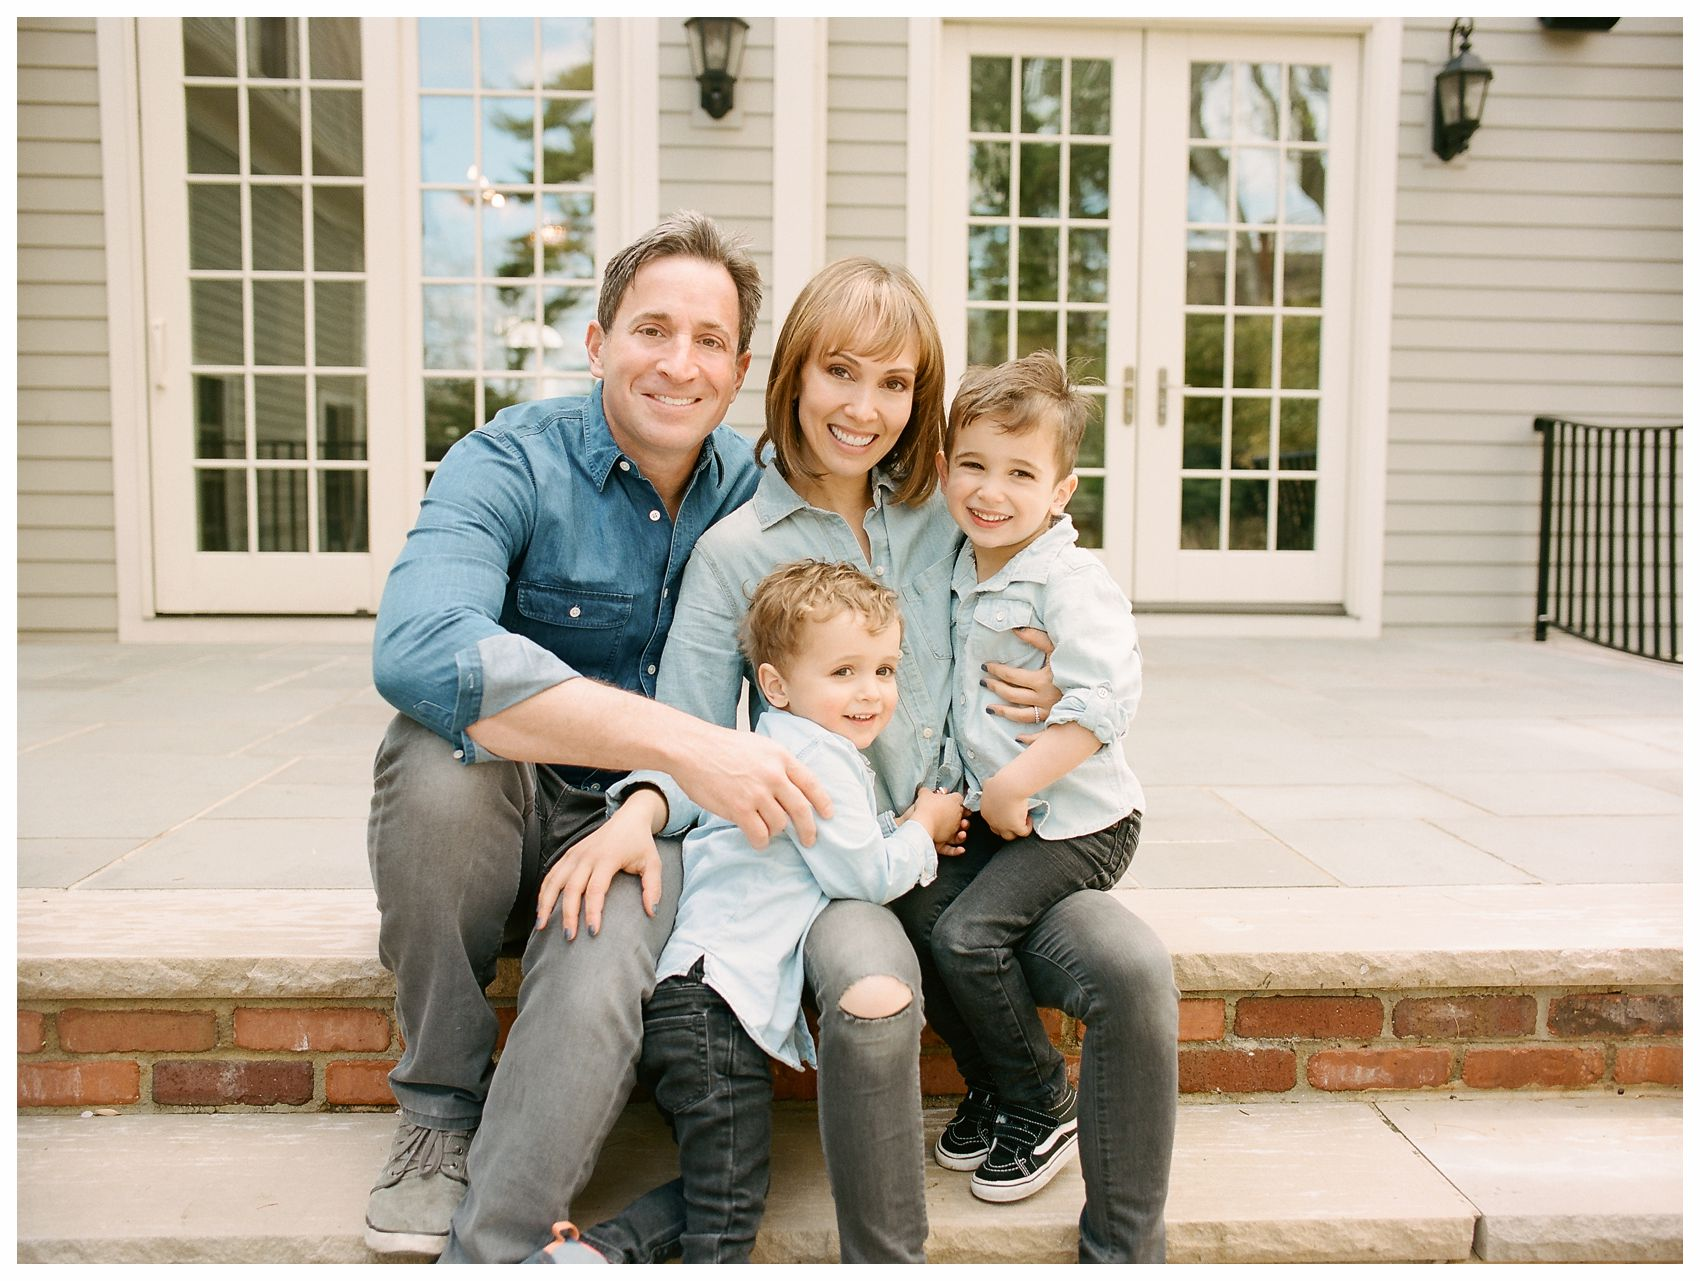 family photography of a family of 4 with two little boys sitting on their porch wearing denim jeans in Essex County